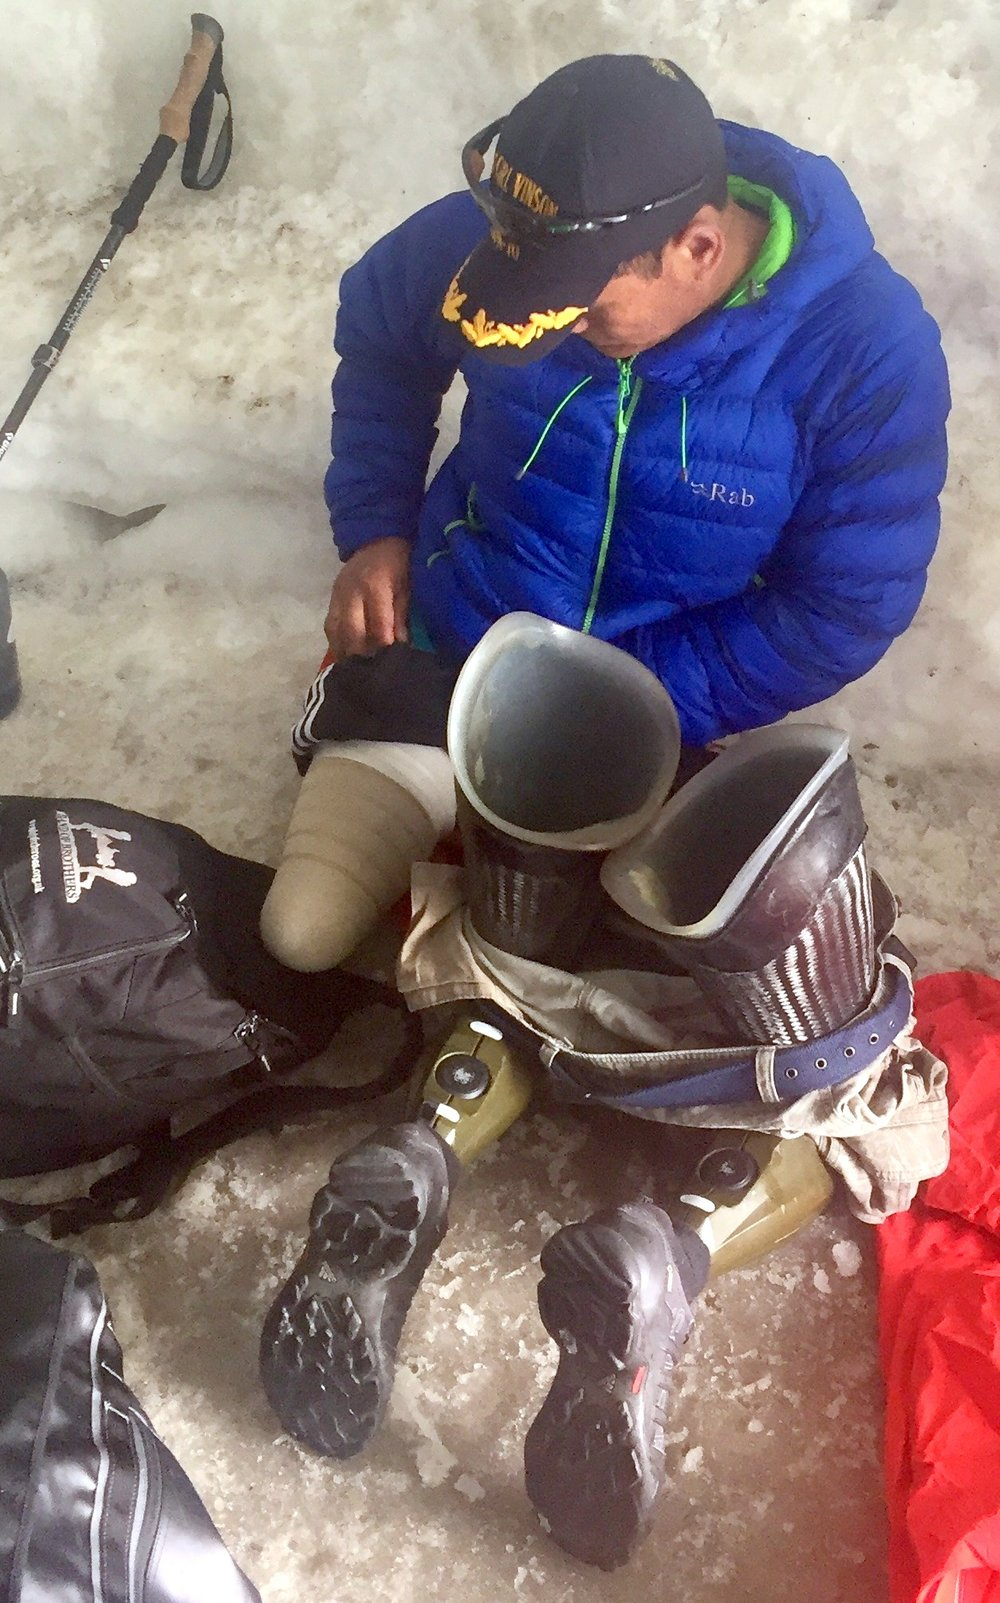 Hari inspects his sockets and residual limb in an ice cave on Mt. Blanc